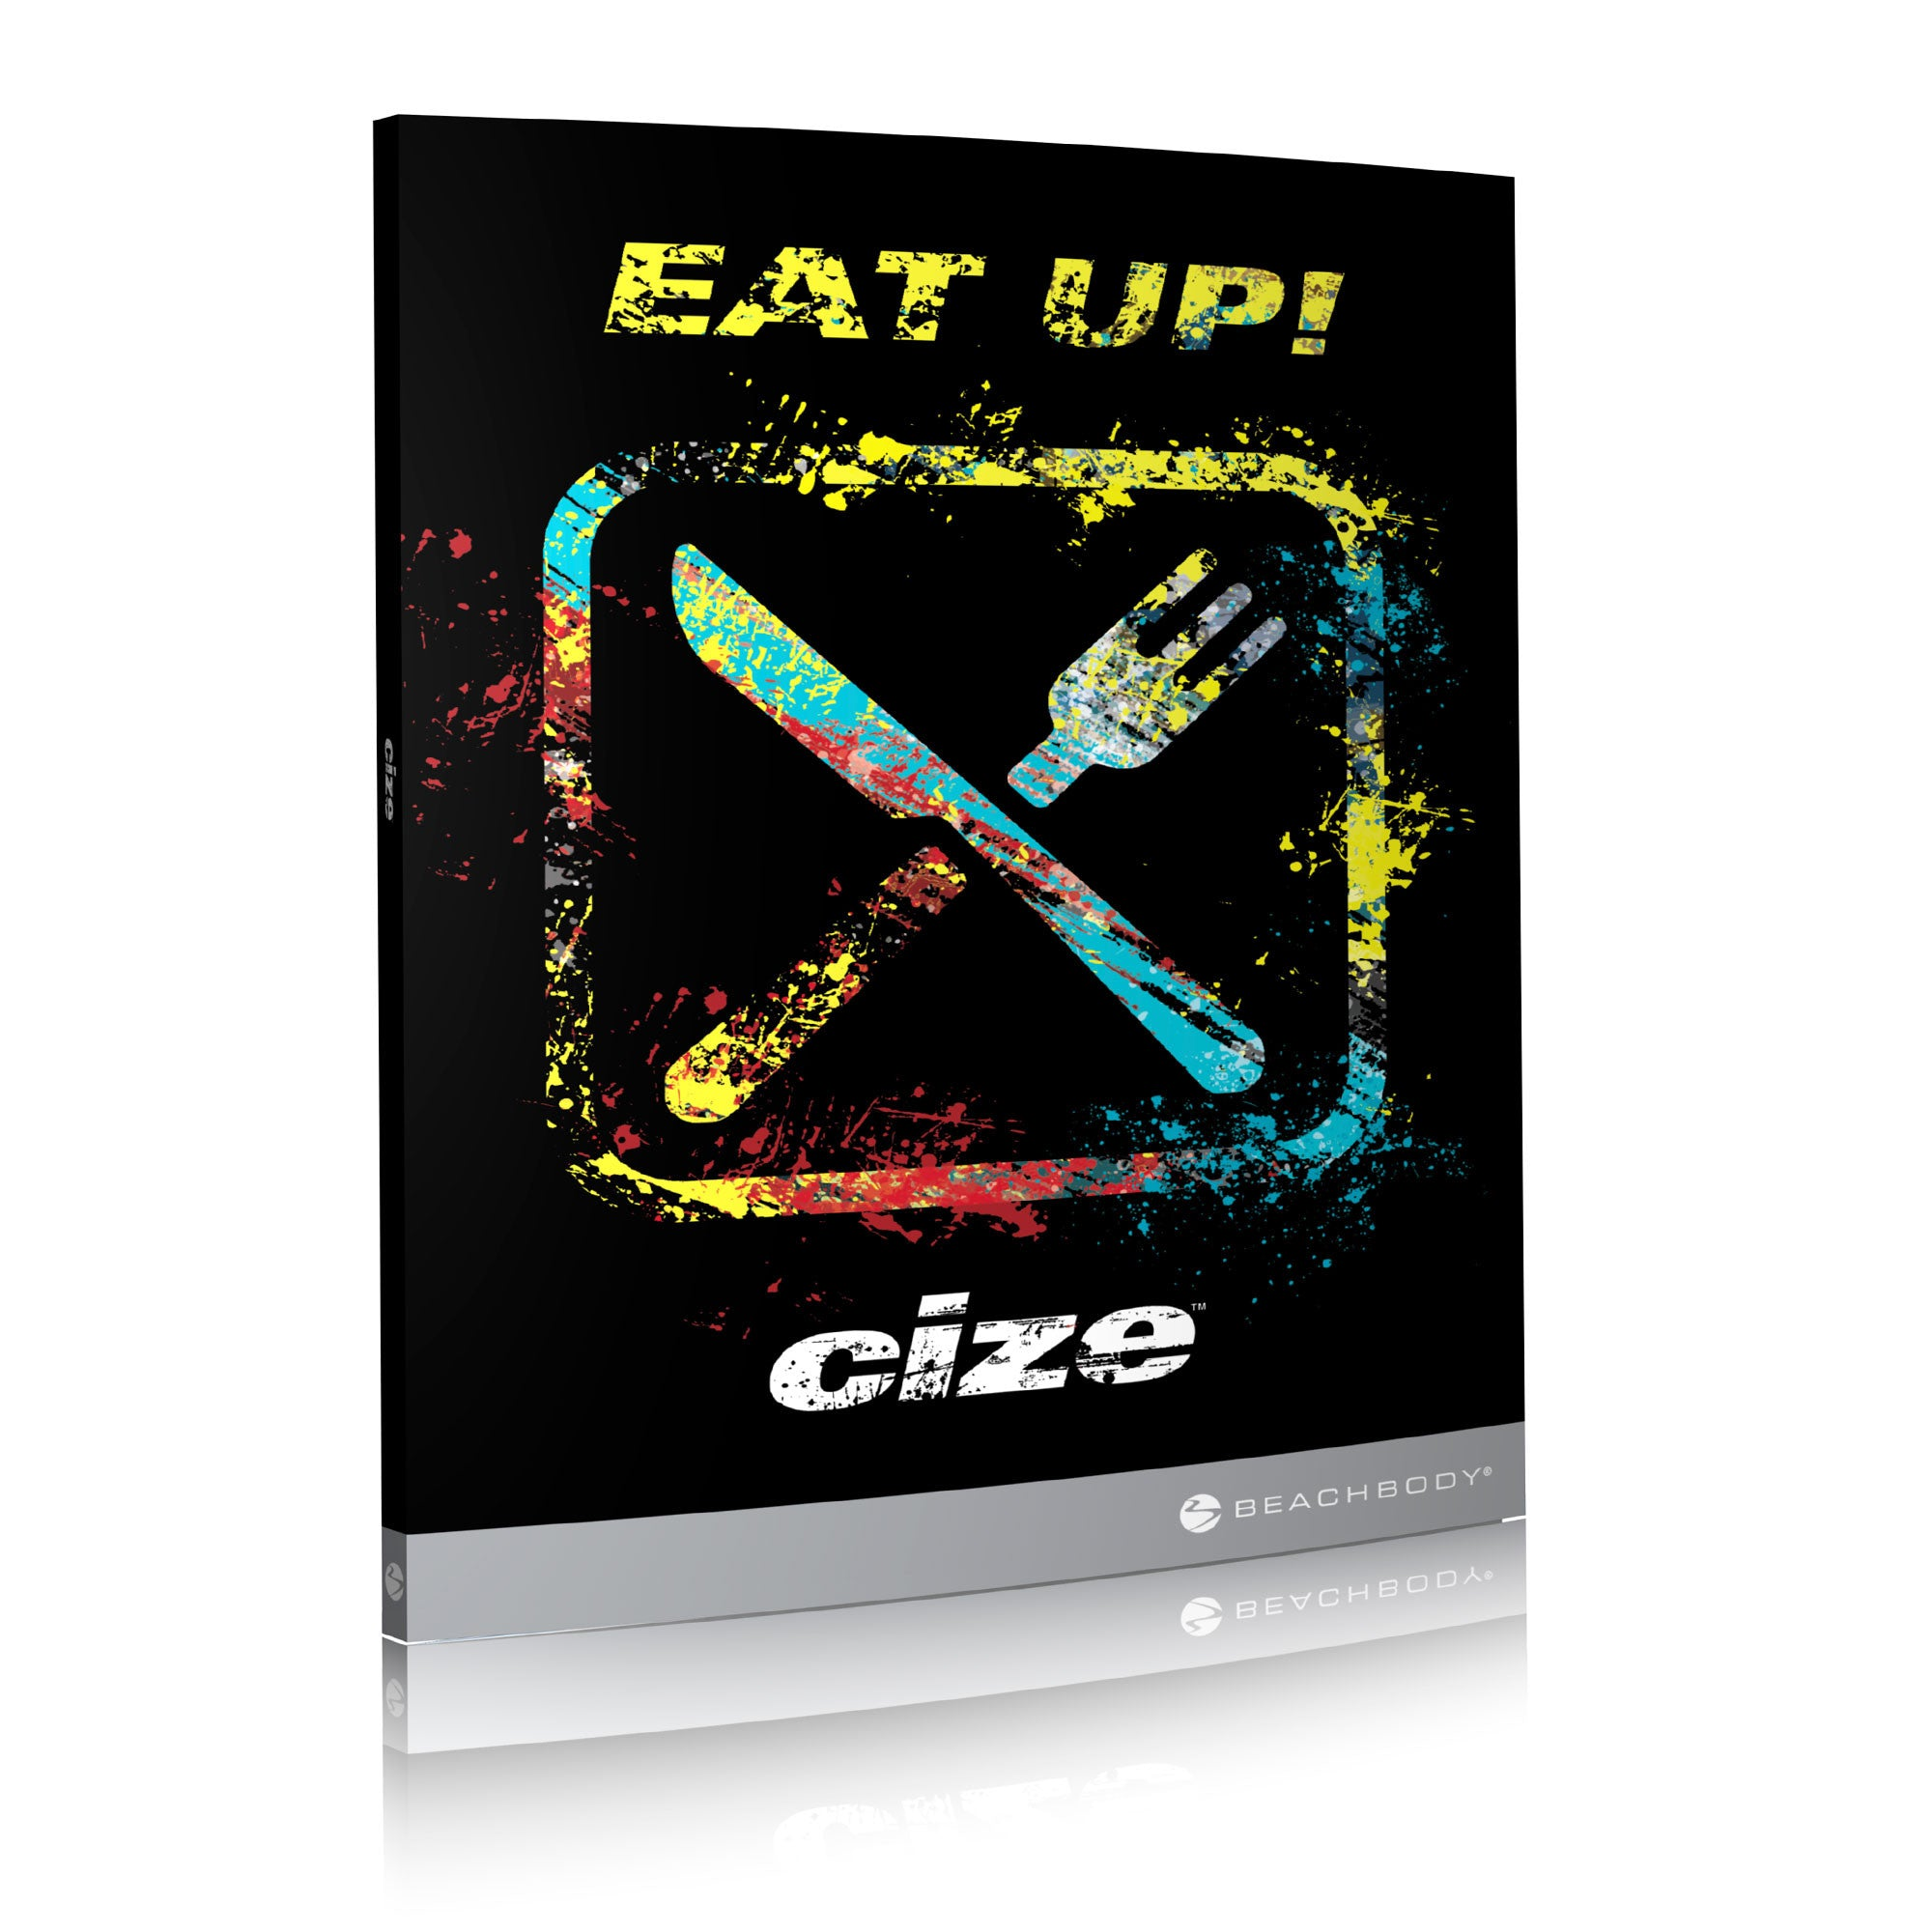 Step Fitness Dvd Uk: Shaun T's CIZE Dance Cardio Fitness DVD Programme